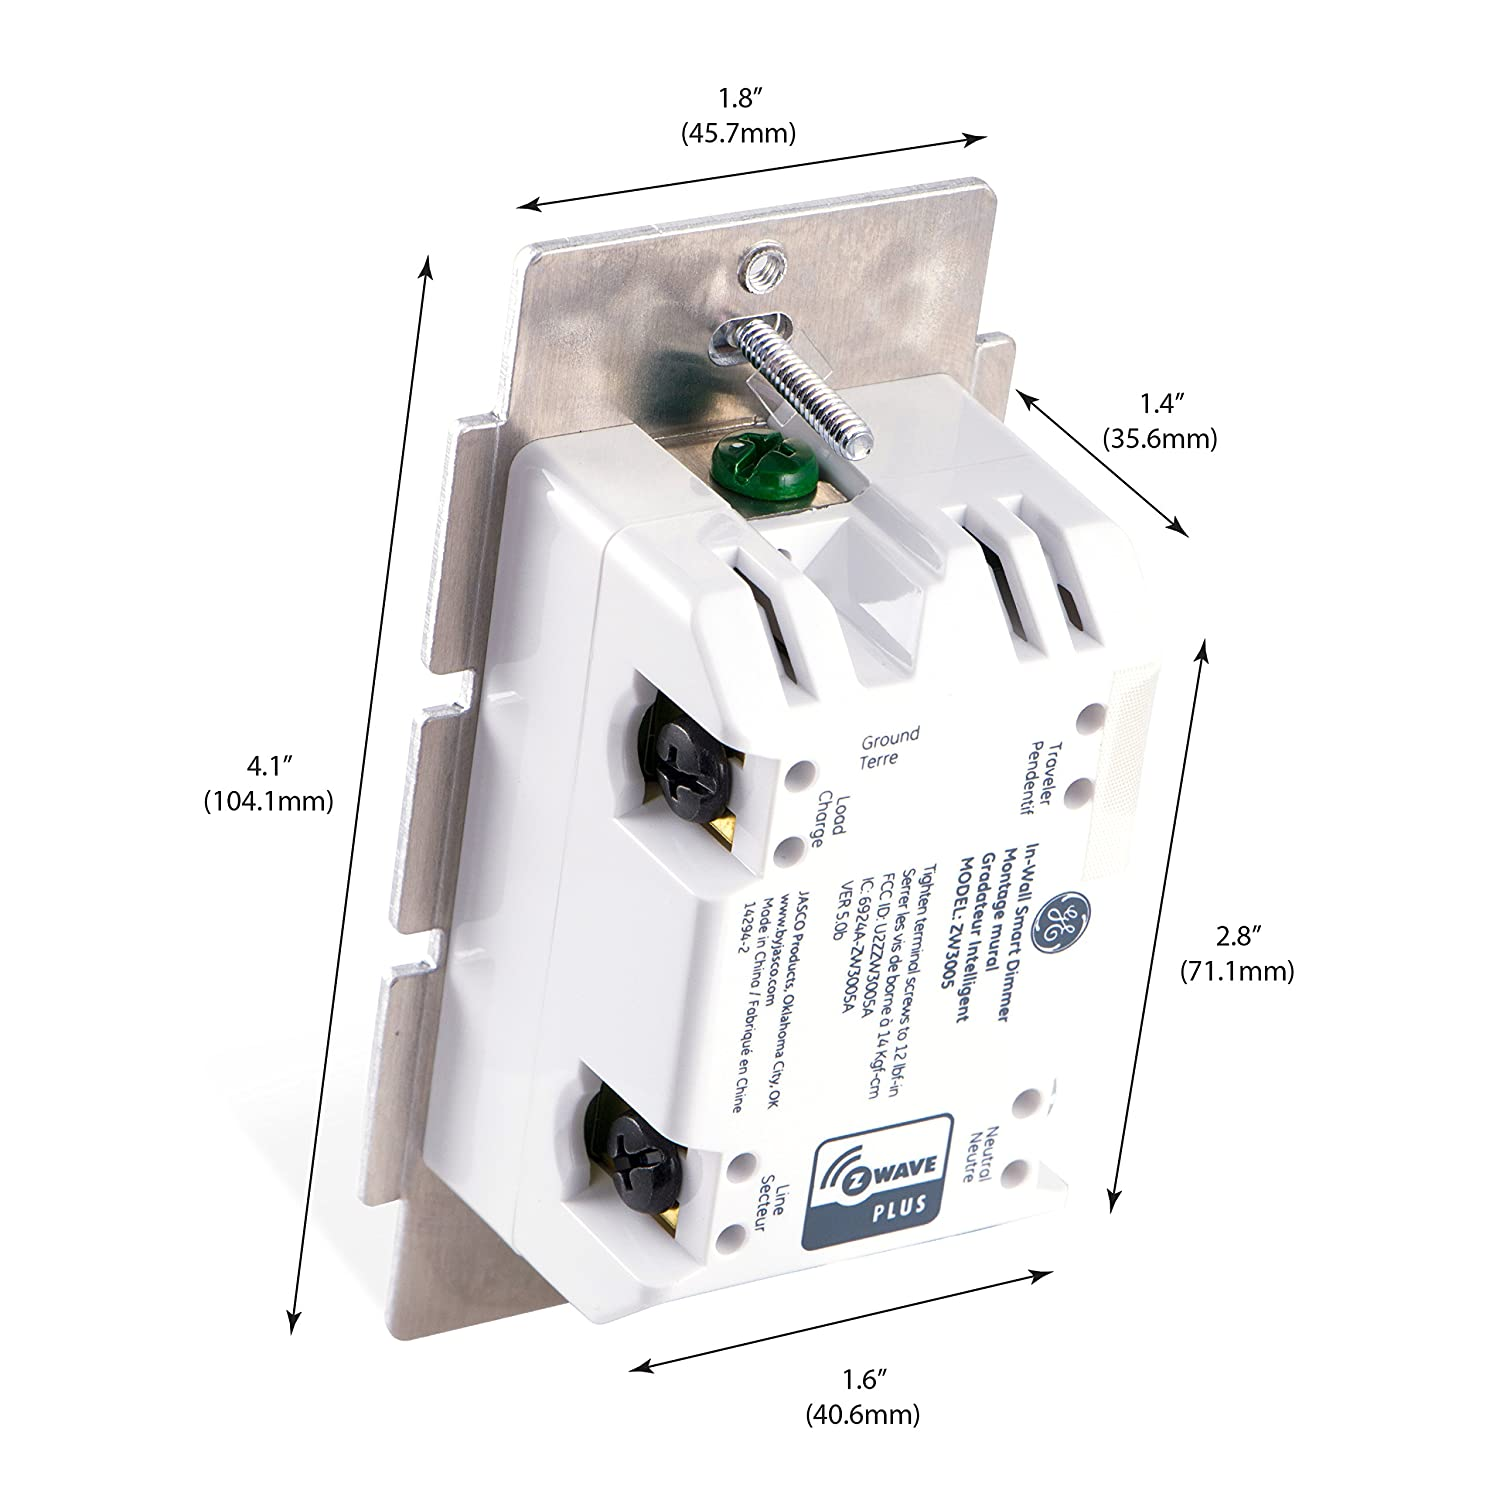 Ge Z Wave Plus Wireless Smart Lighting Control Dimmer Switch In Automate Remote Start Wiring Diagram Wall Full Range Dimming Includes White Light Almond Paddles Hub Re Home